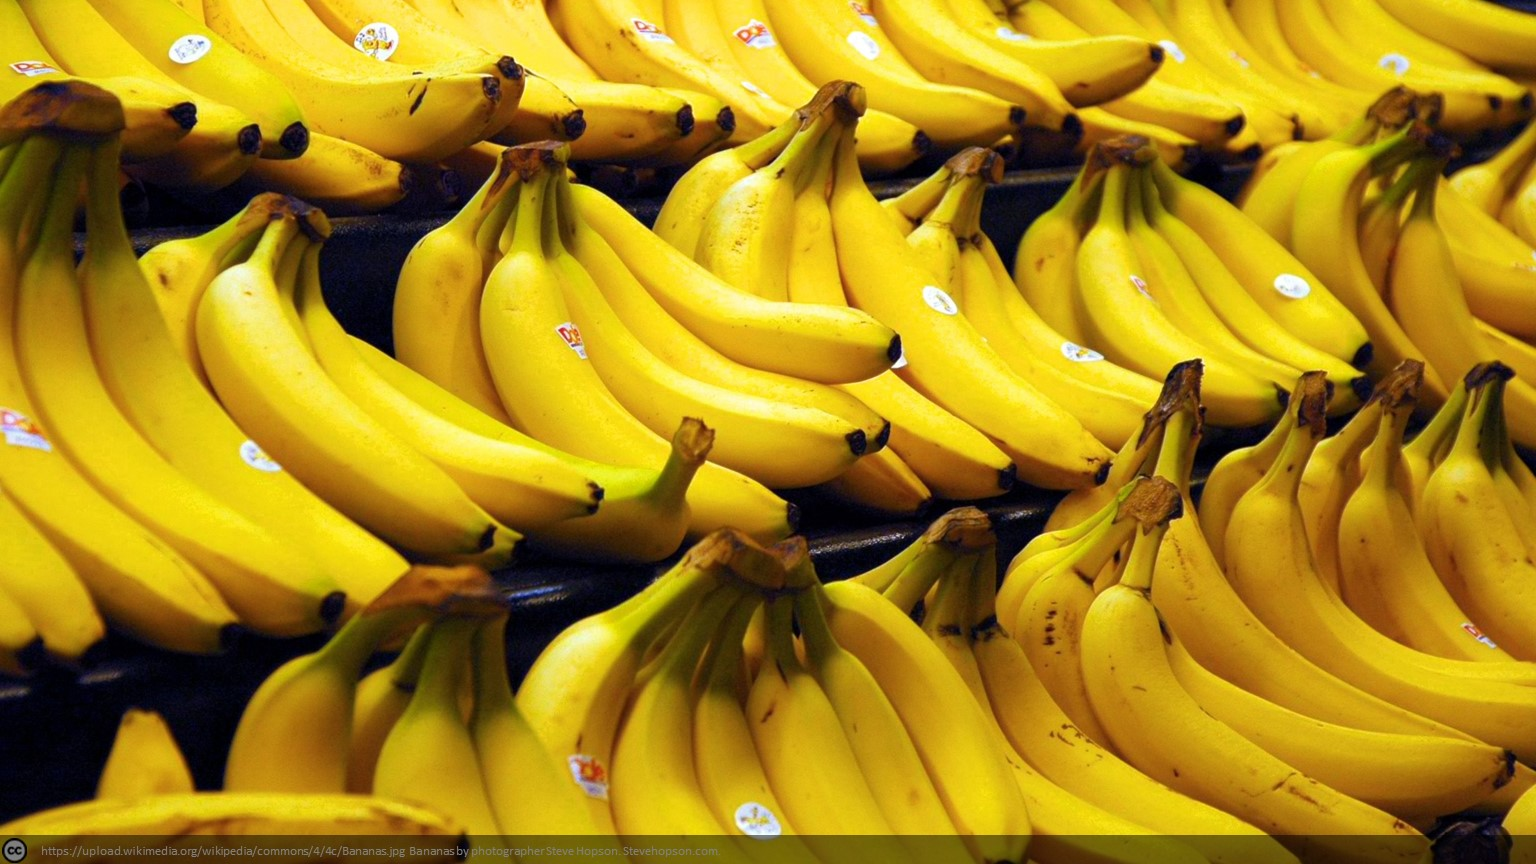 Tune into the Cloud: Yes, we have no Banana's